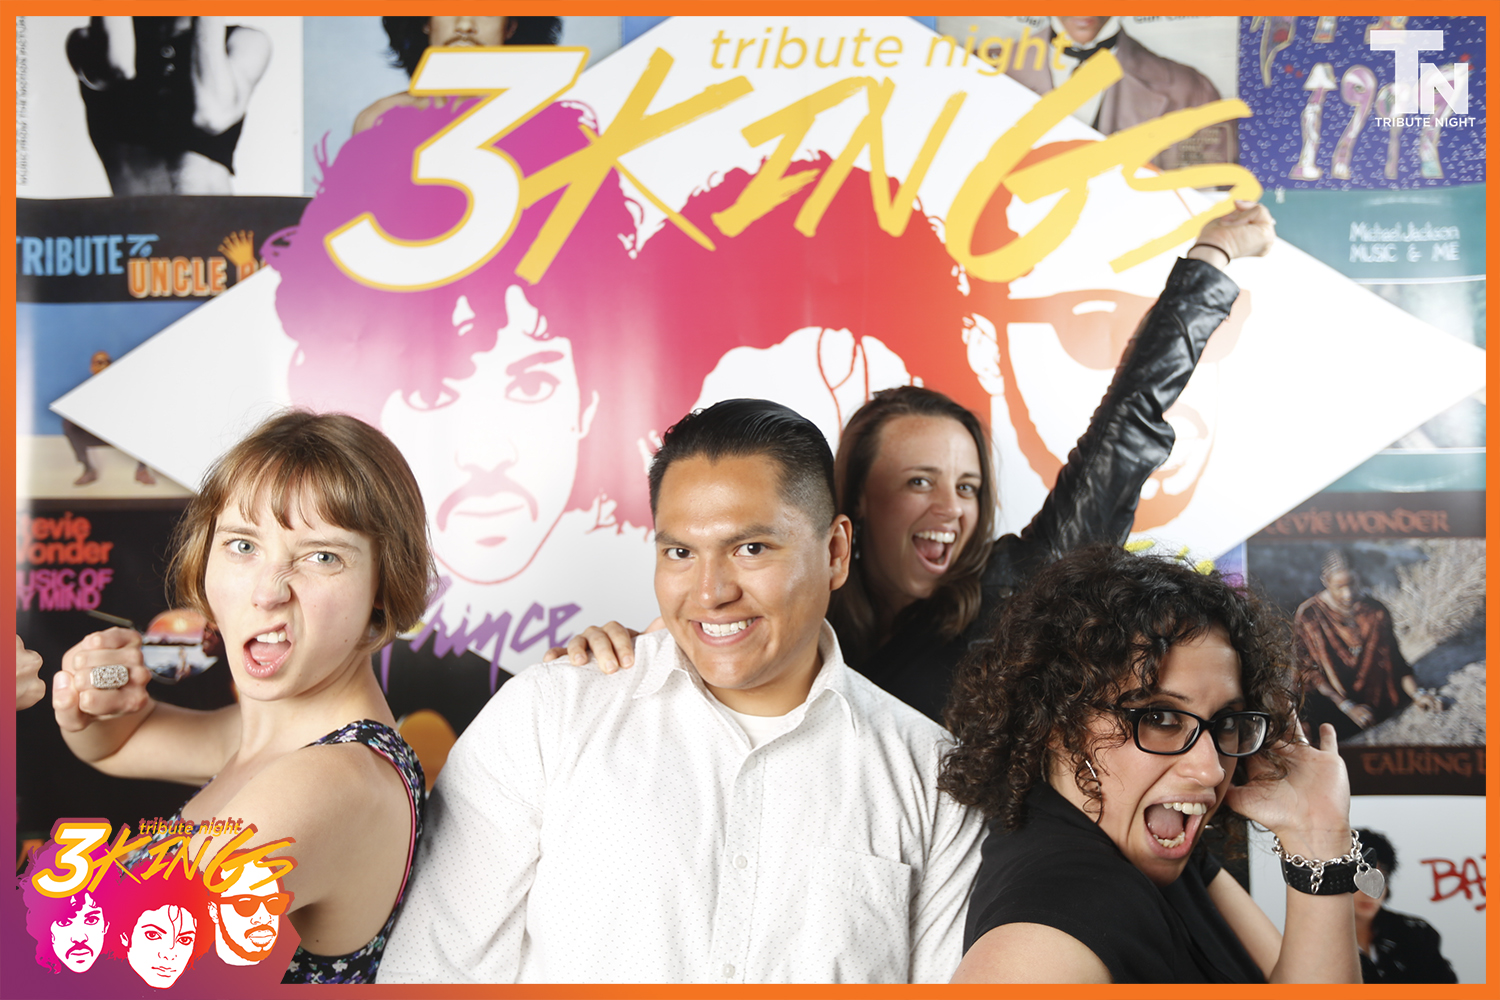 3kings Tribute Night Logo150.jpg